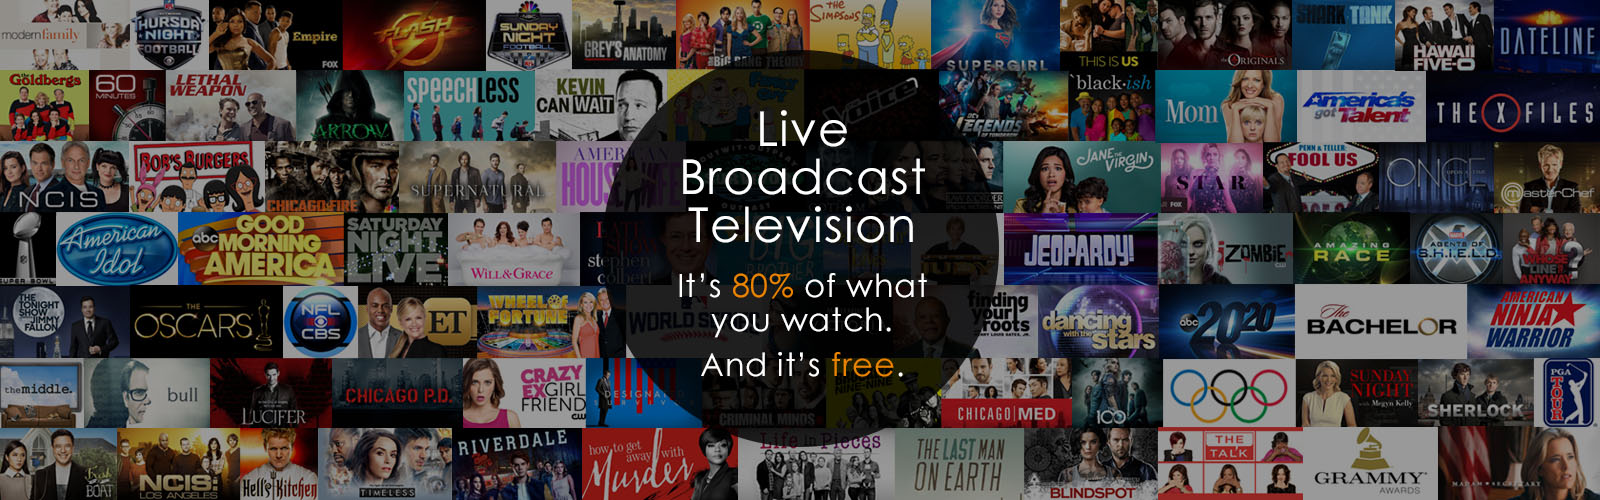 Live Broadcast TV is 80% of what you watch.